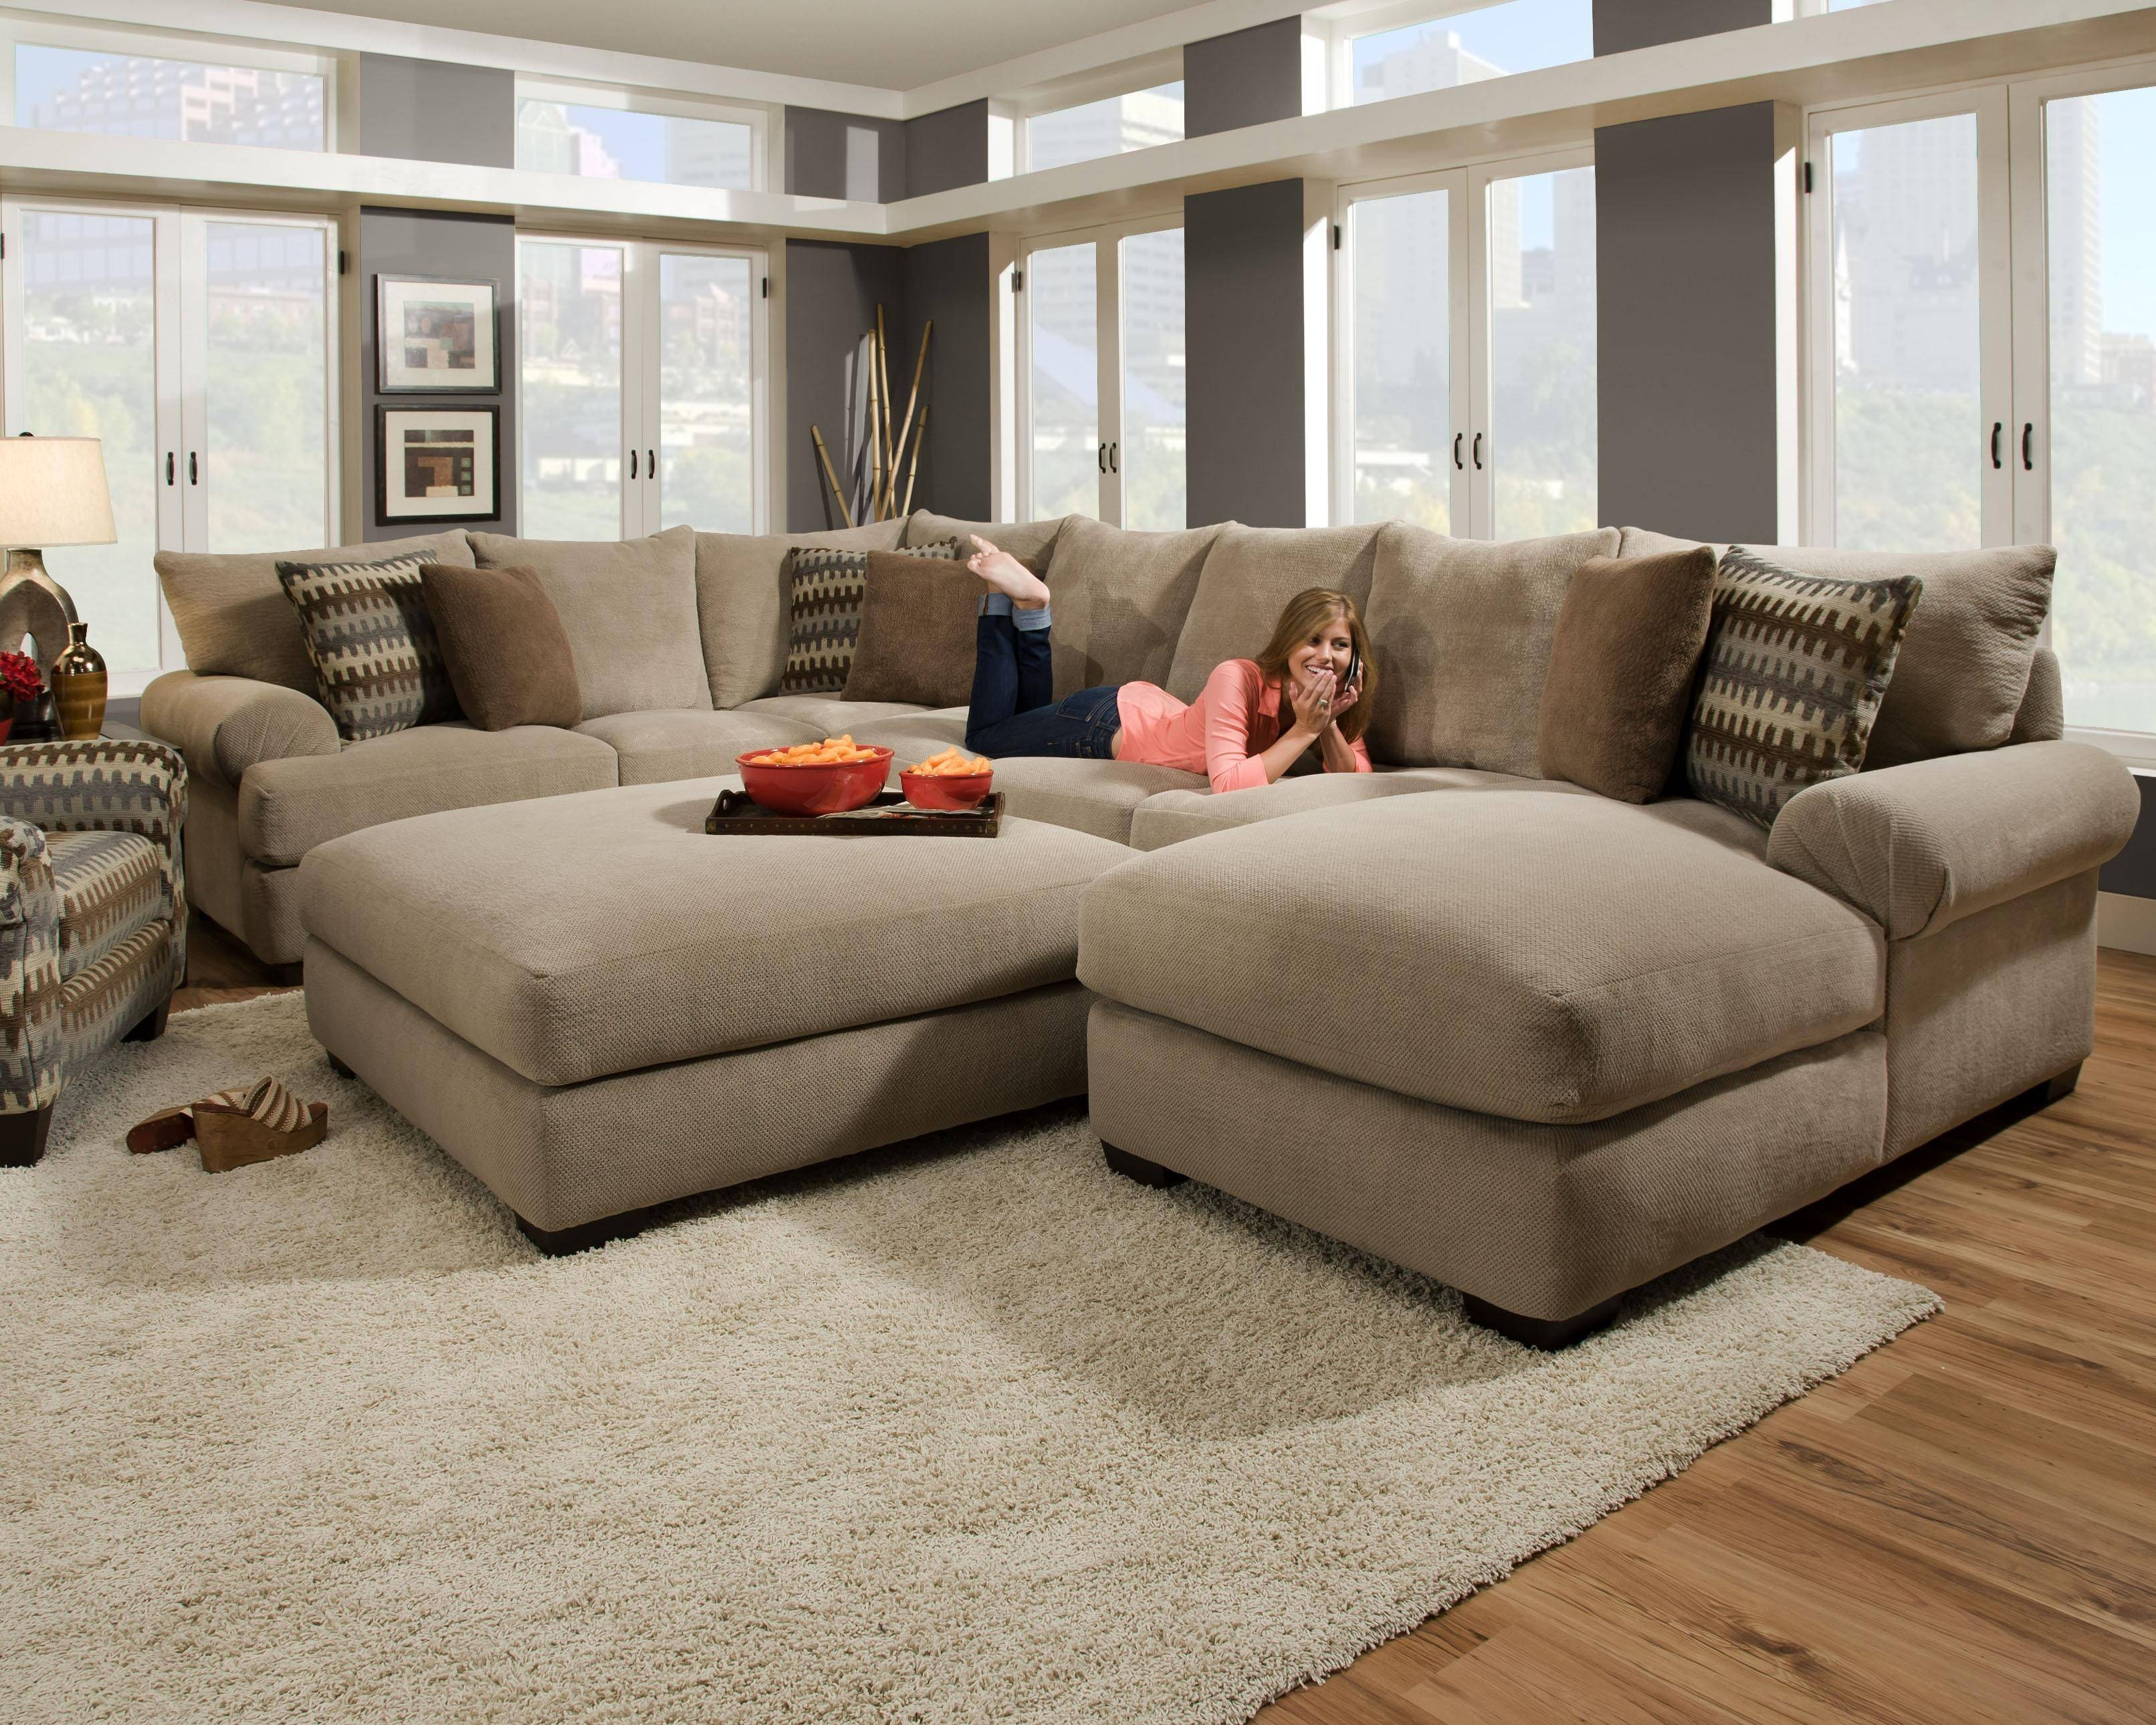 Discount Sectional Sofas | Roselawnlutheran within Discounted Sectional Sofa (Image 7 of 30)